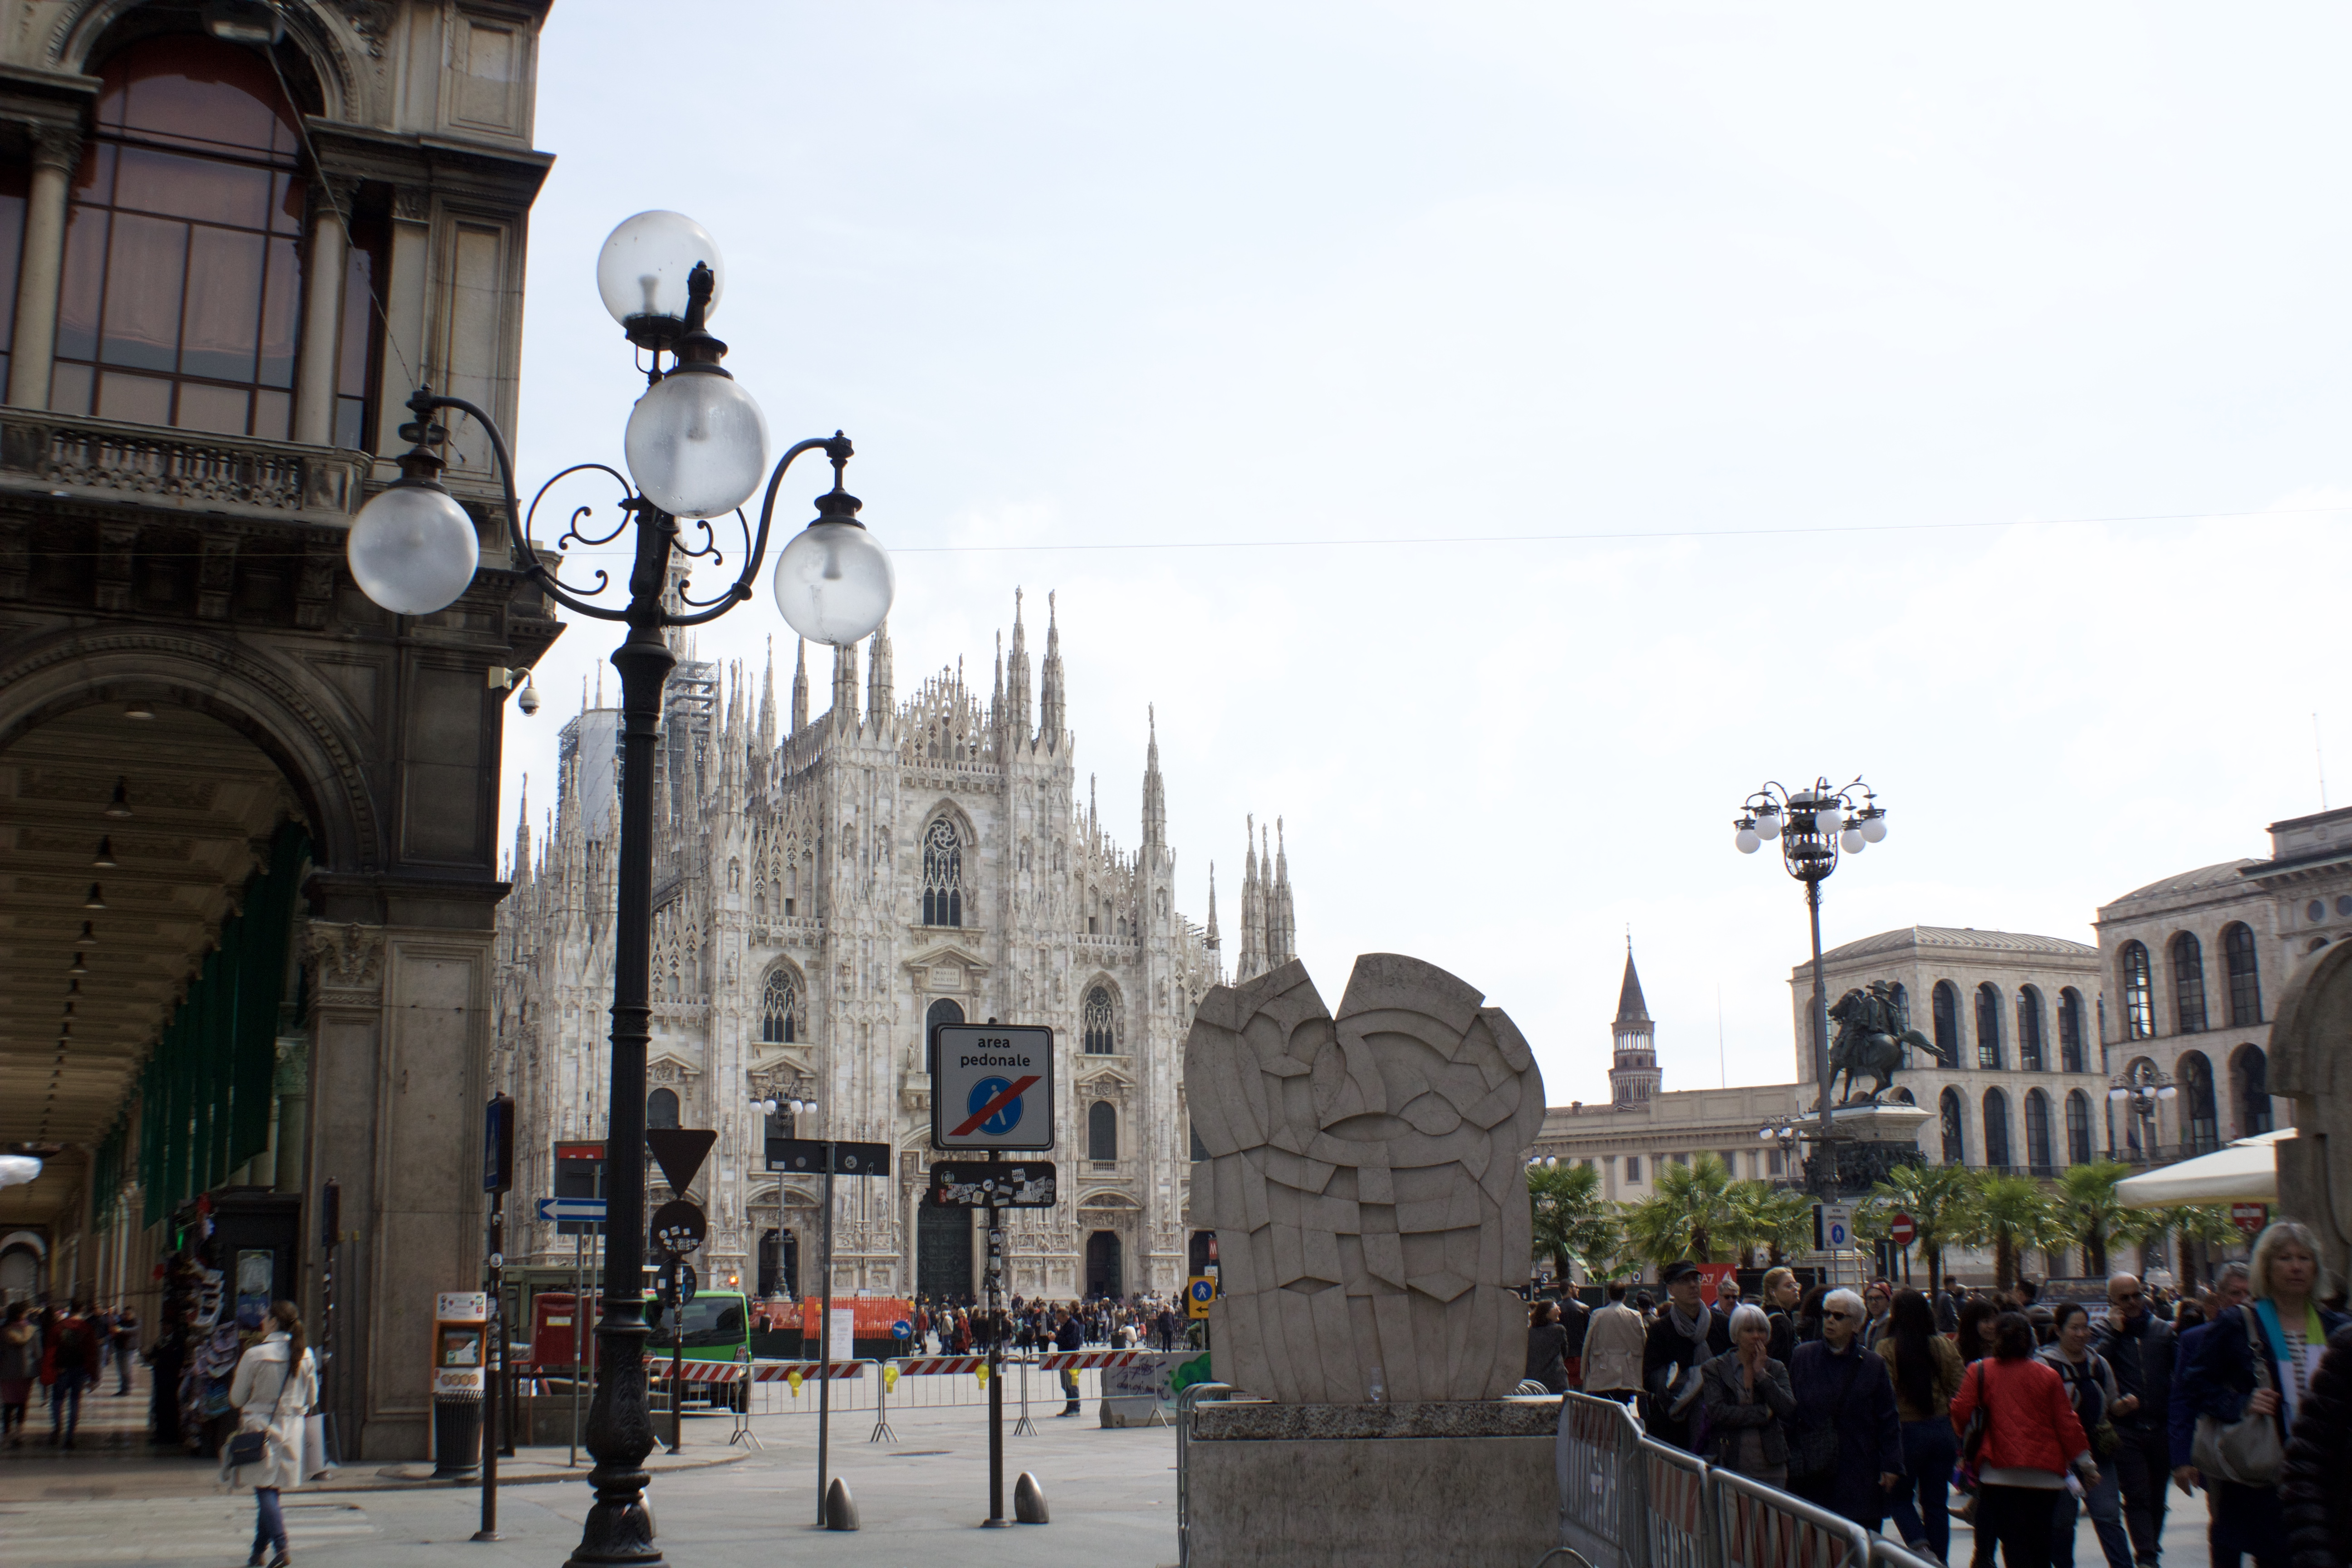 A beautiful view of the Piazza del Duomo